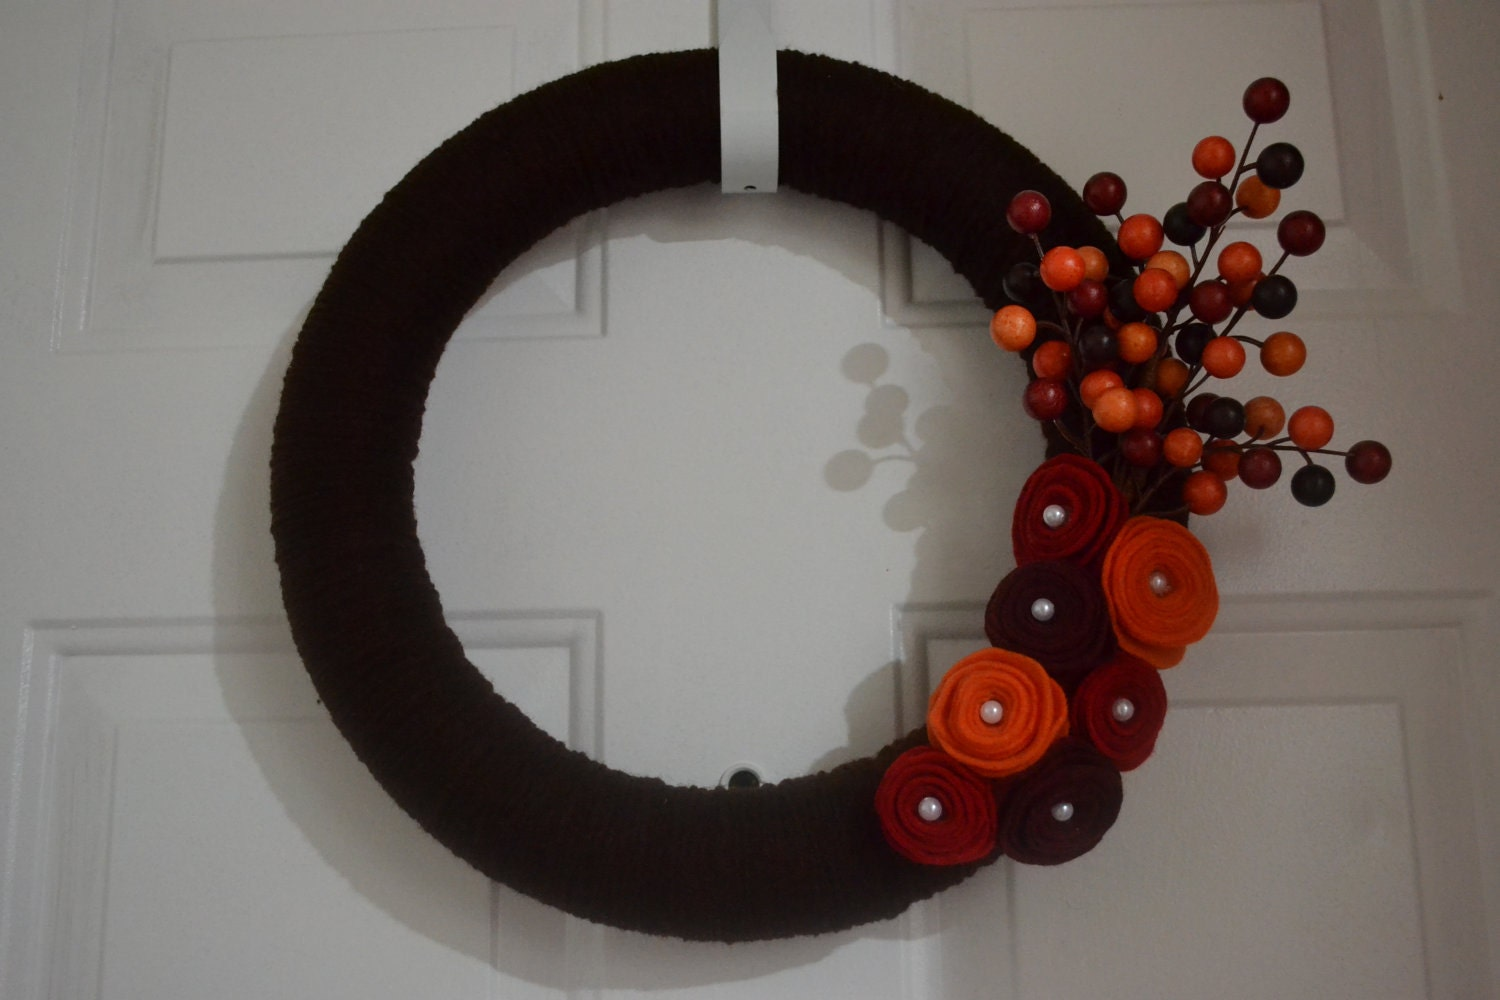 Fall Yarn Wreath with Felt Flowers - 14""